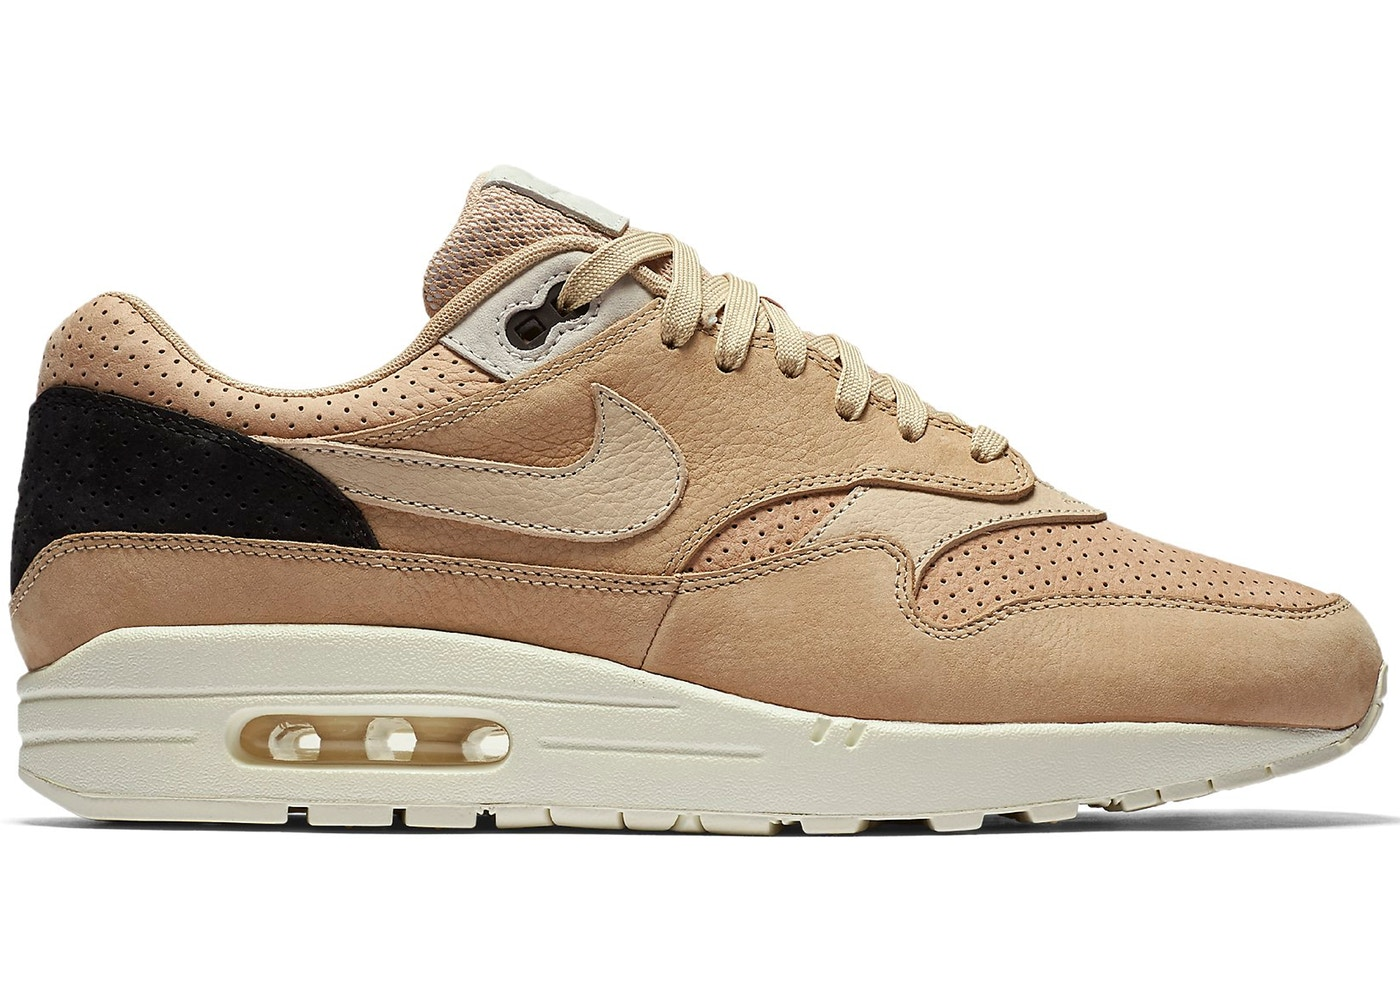 Air Max Max 1 Mushroom Max Pinnacle Mushroom Air 1 Pinnacle Air rdCtQsh